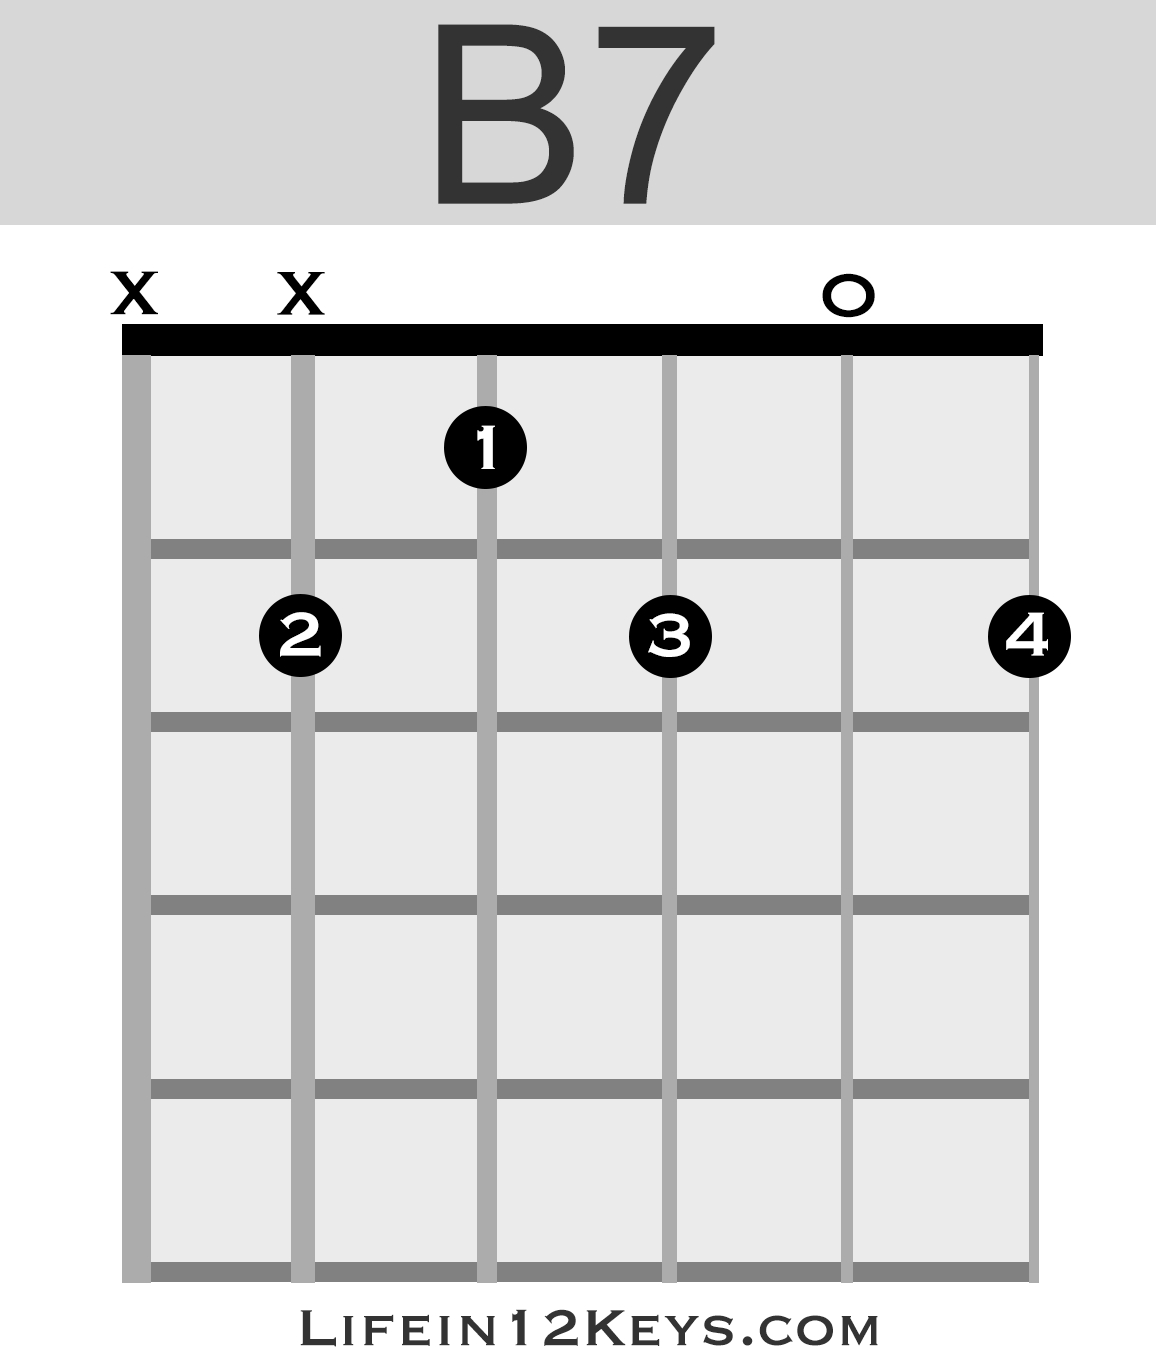 B7 Guitar Chord 20 Essential Guitar Chords For Beginners Life In 12 Keys